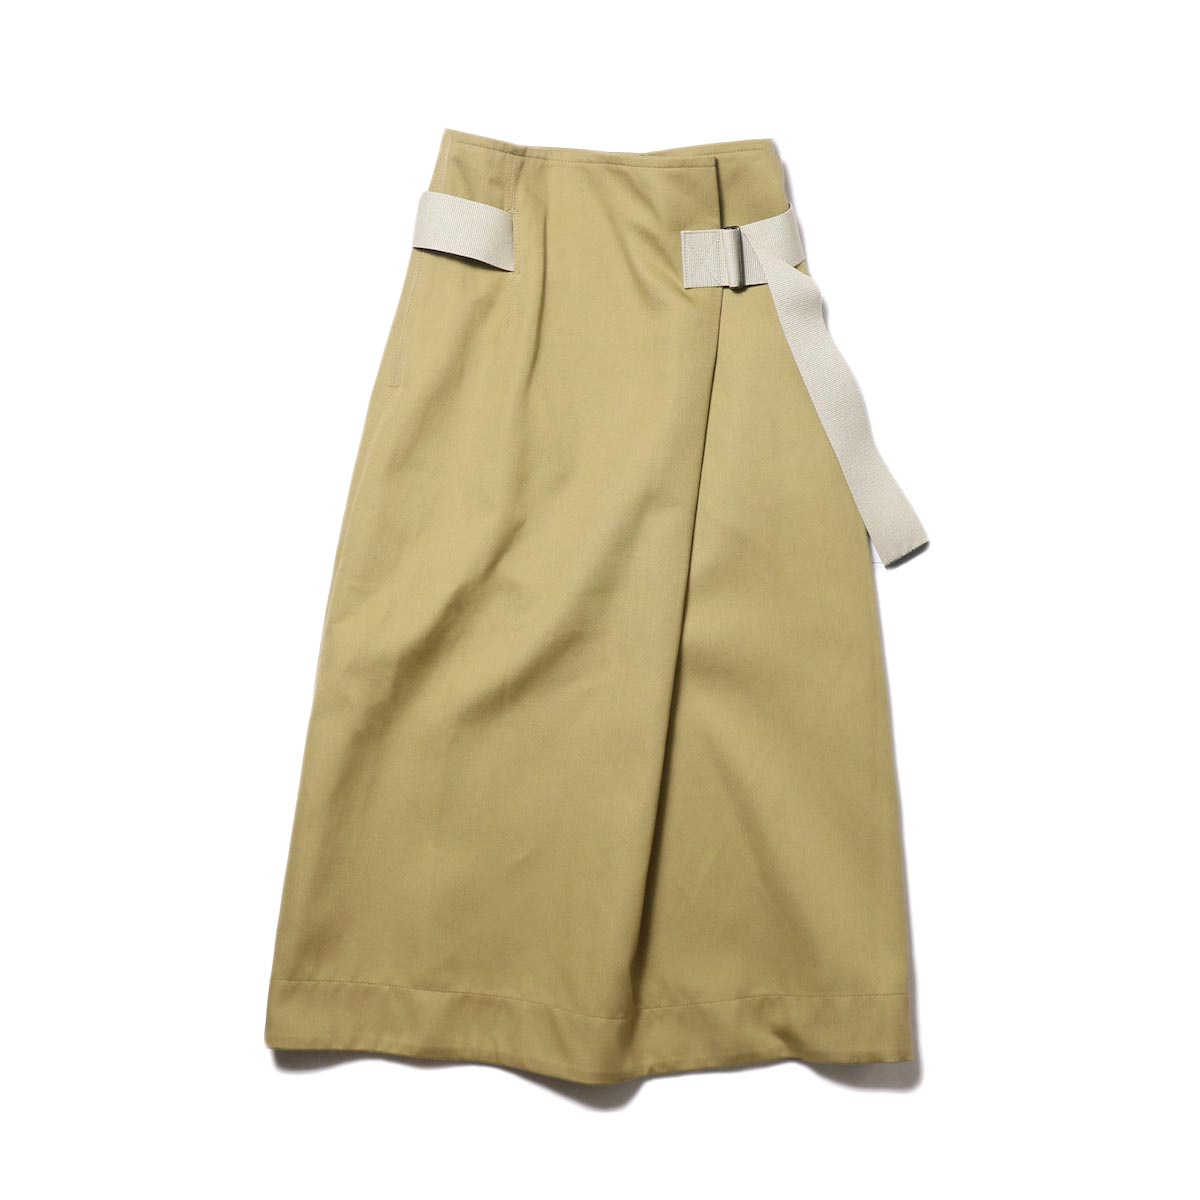 YLEVE / ELS COTTON DOUBLE CLOTH SKIRT (khaki) 正面